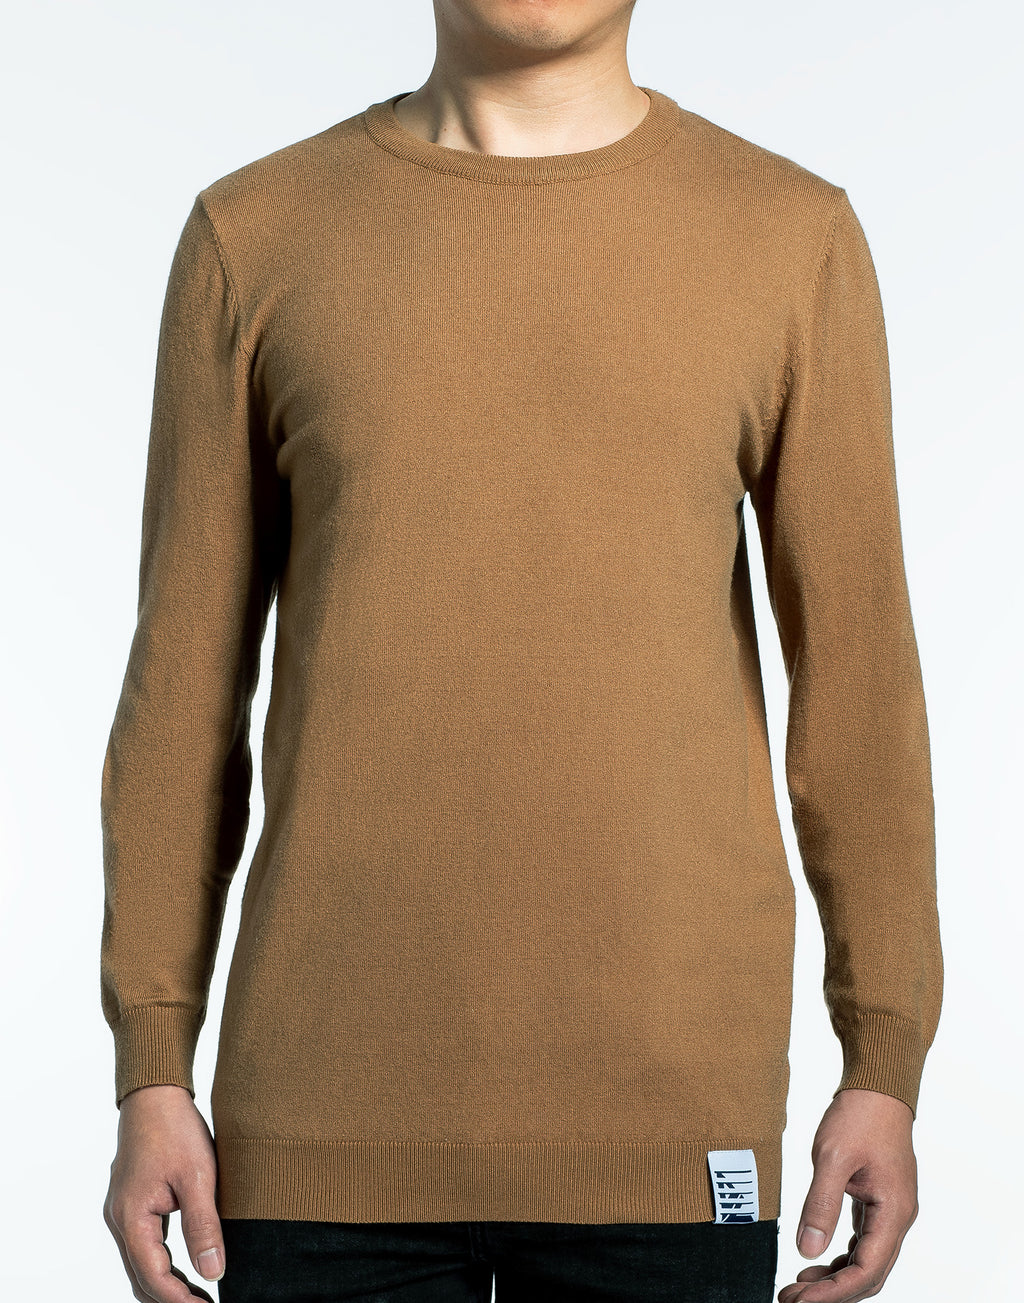 Brown Crewneck Sweater